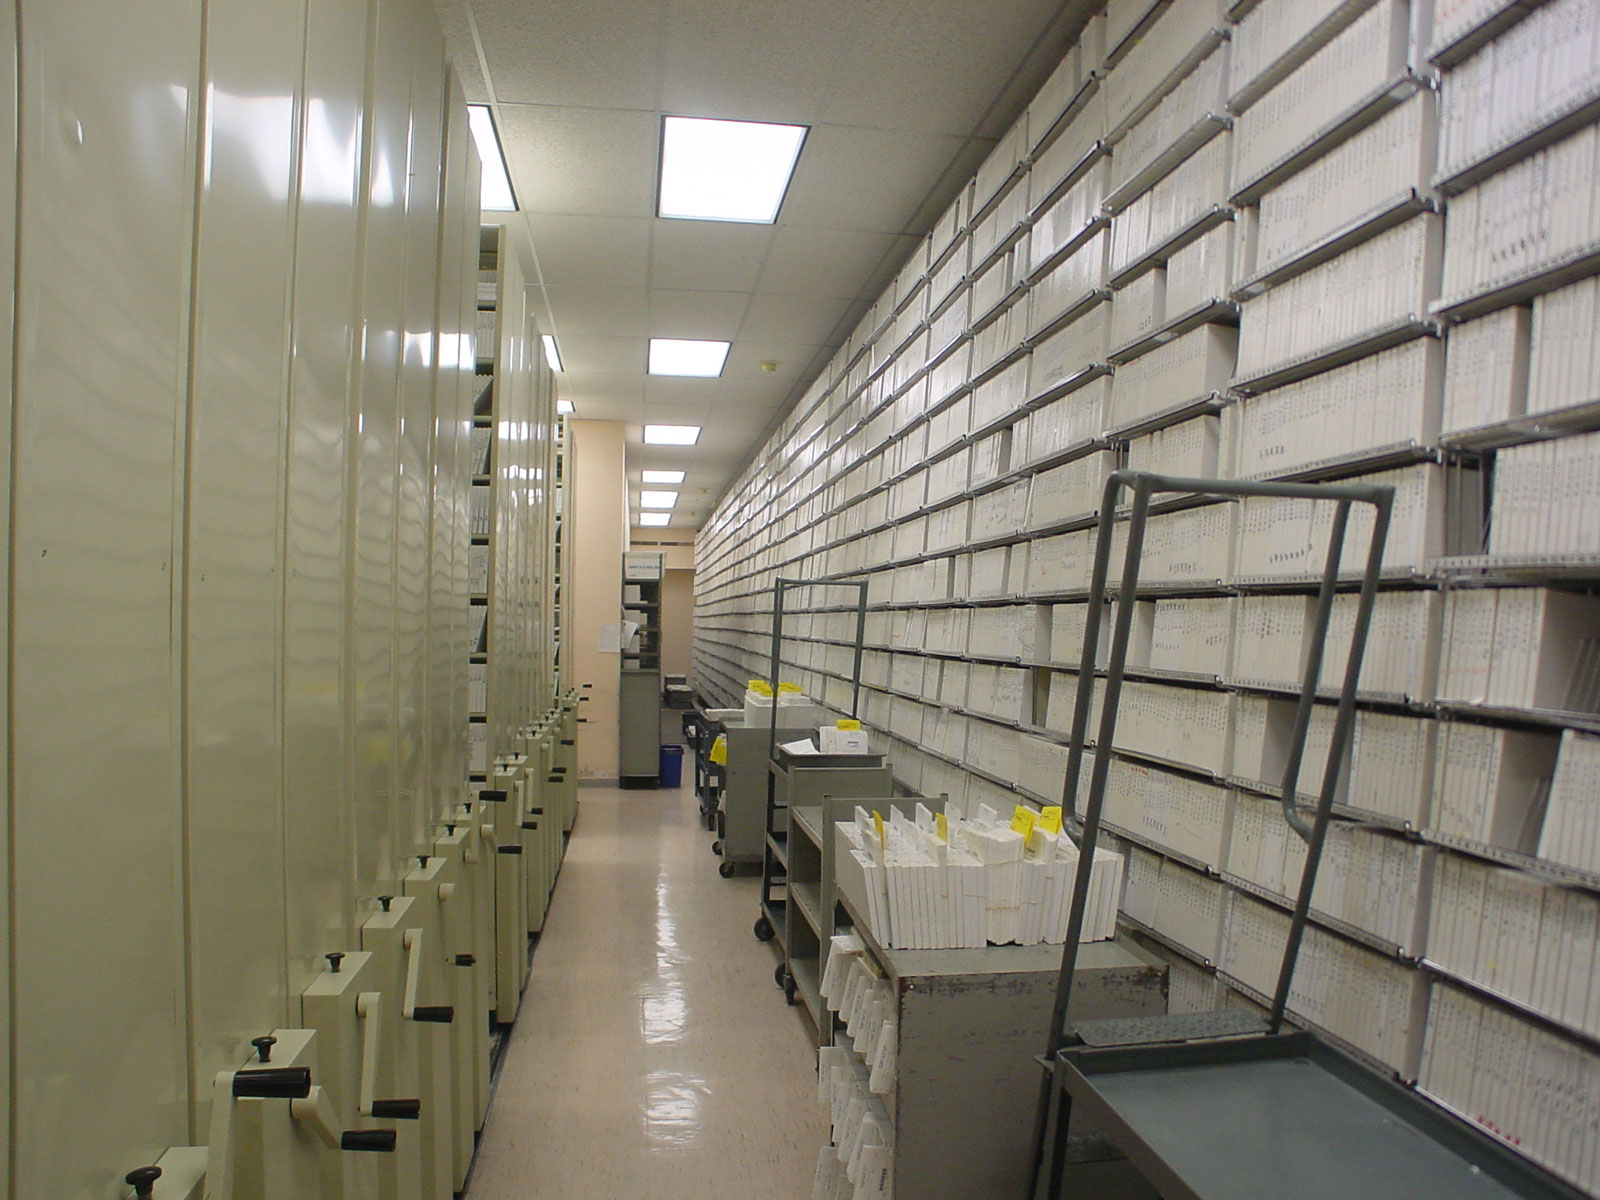 This 83,000-volume Master Tape Library is the largest educational resource of its kind in the world and Dennis designed three continuous movable shelving systems to handle the product. These 12' tall carousels are 80' long and rotate by computer signal to bring the selected audio master tape to an operator for duplicating.